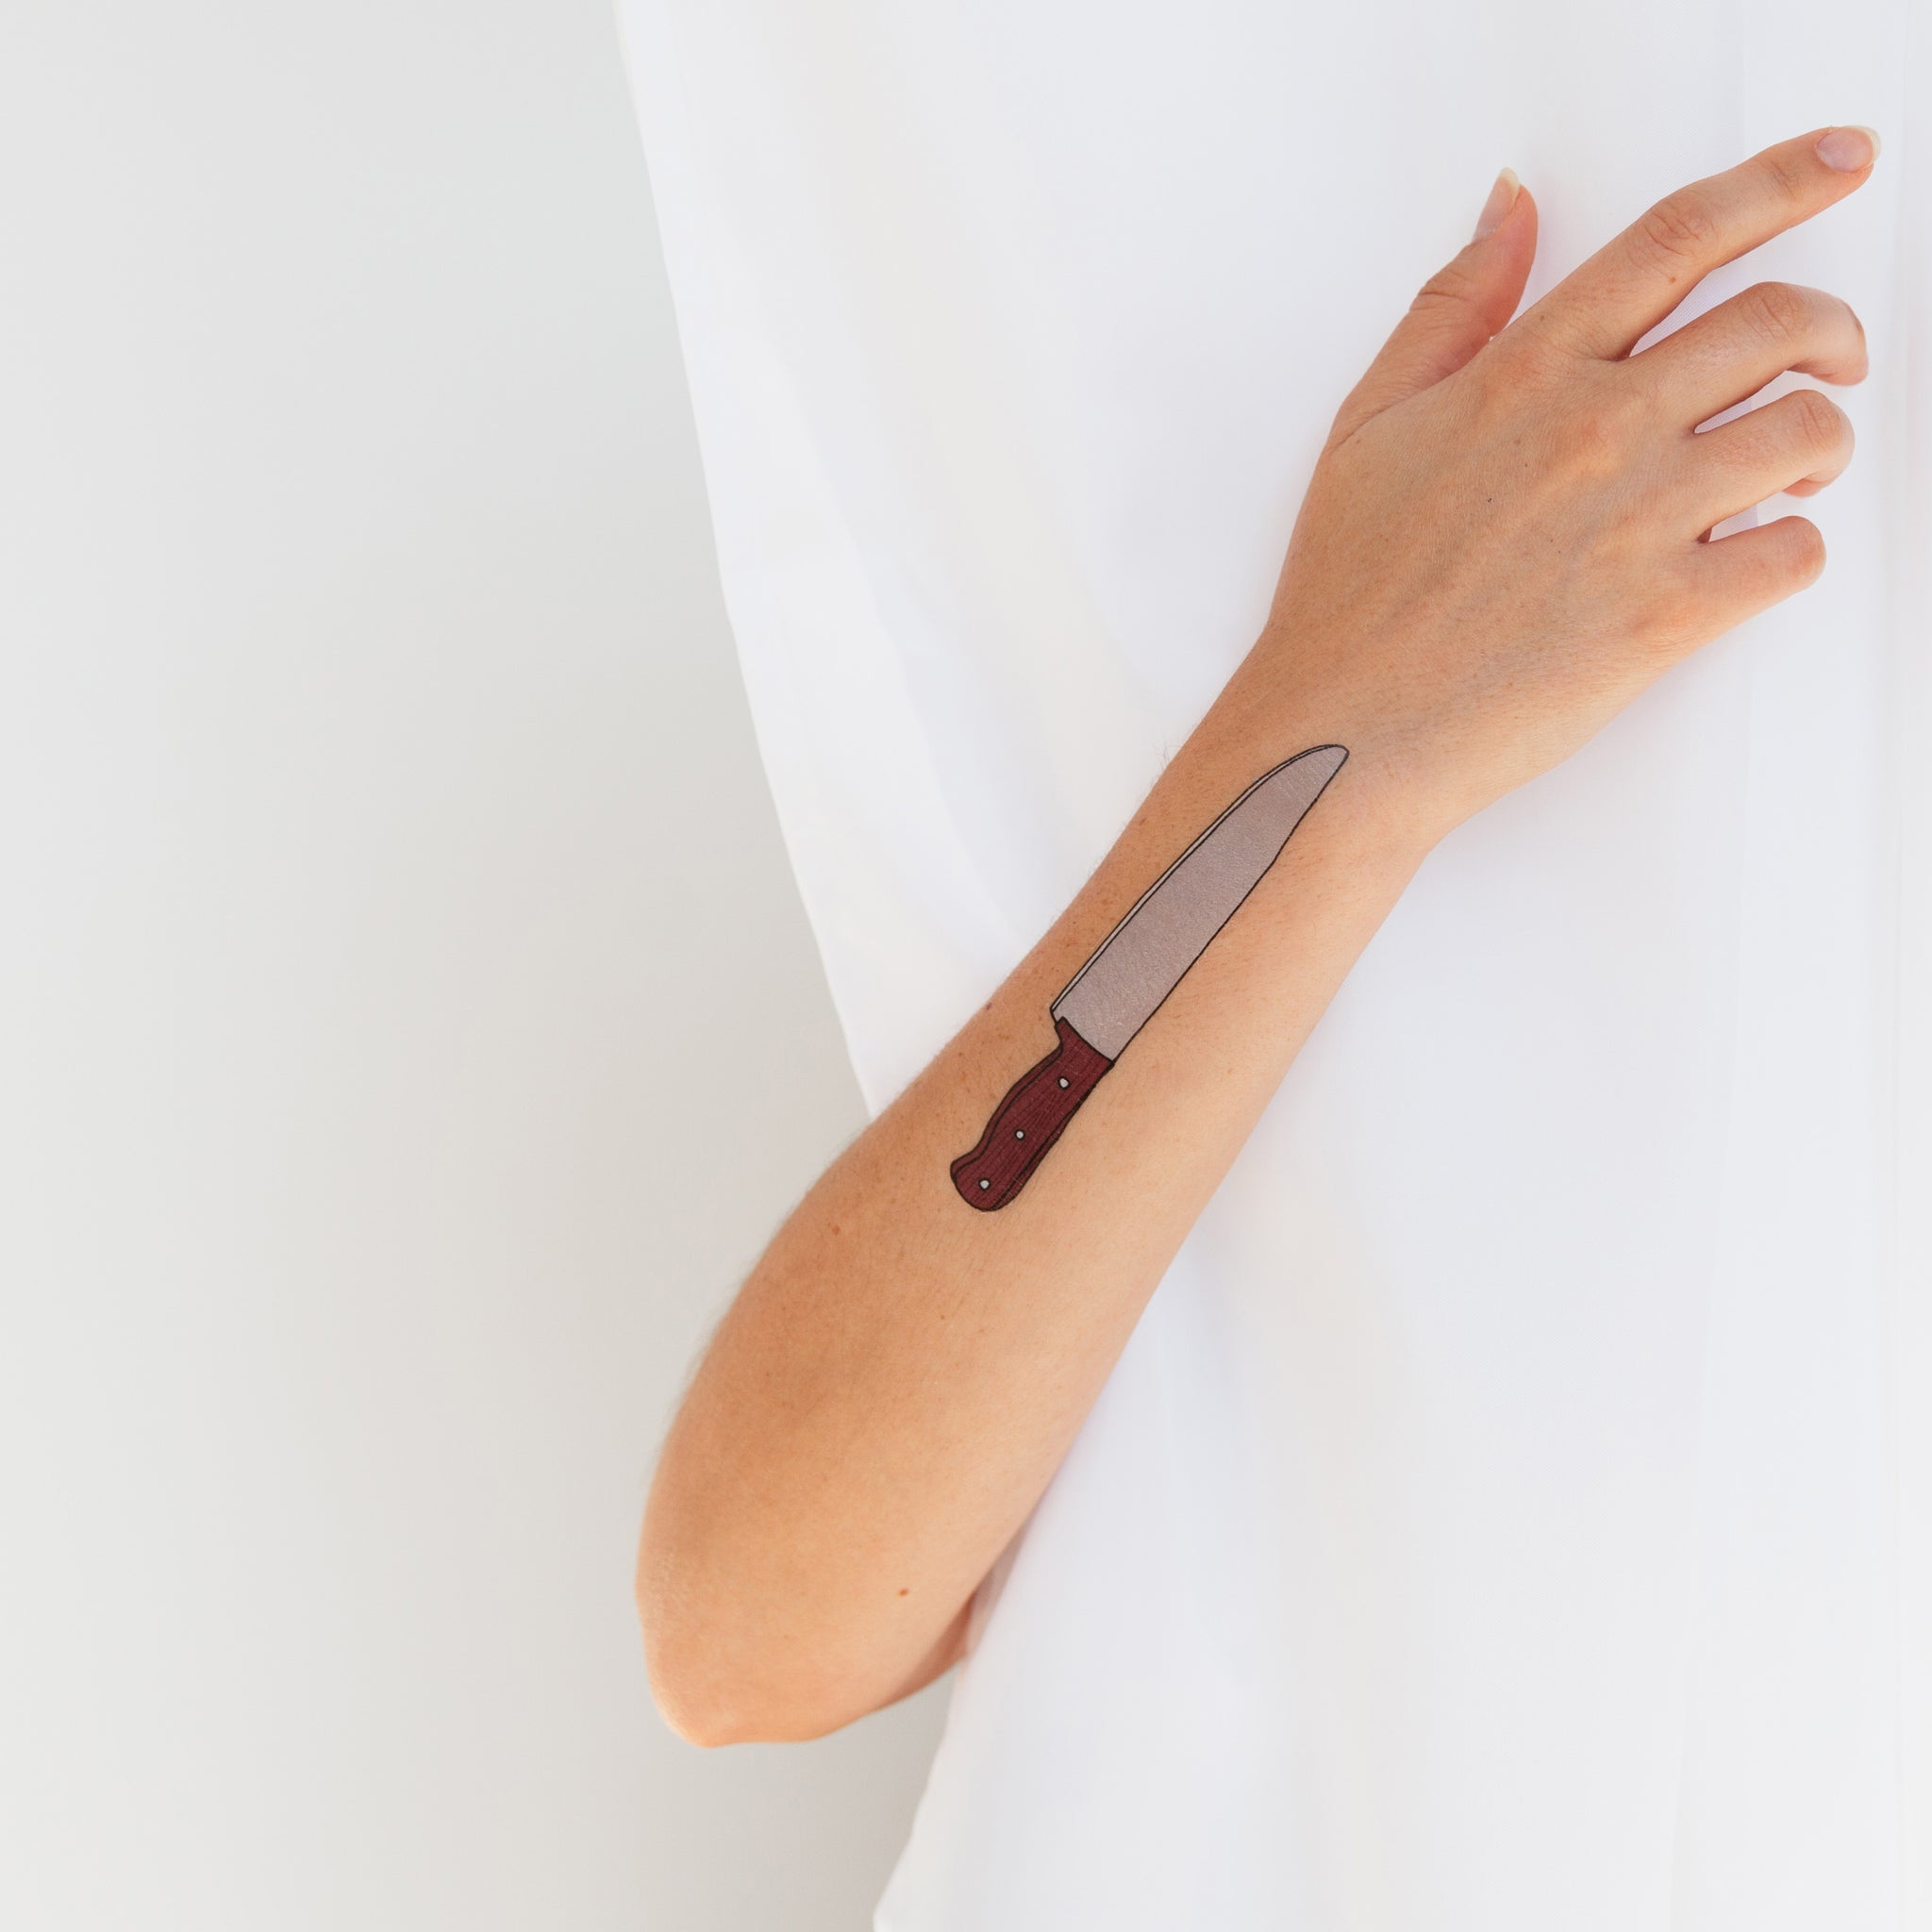 3a3293bdc Chef's Knife by Julia Rothman from Tattly Temporary Tattoos